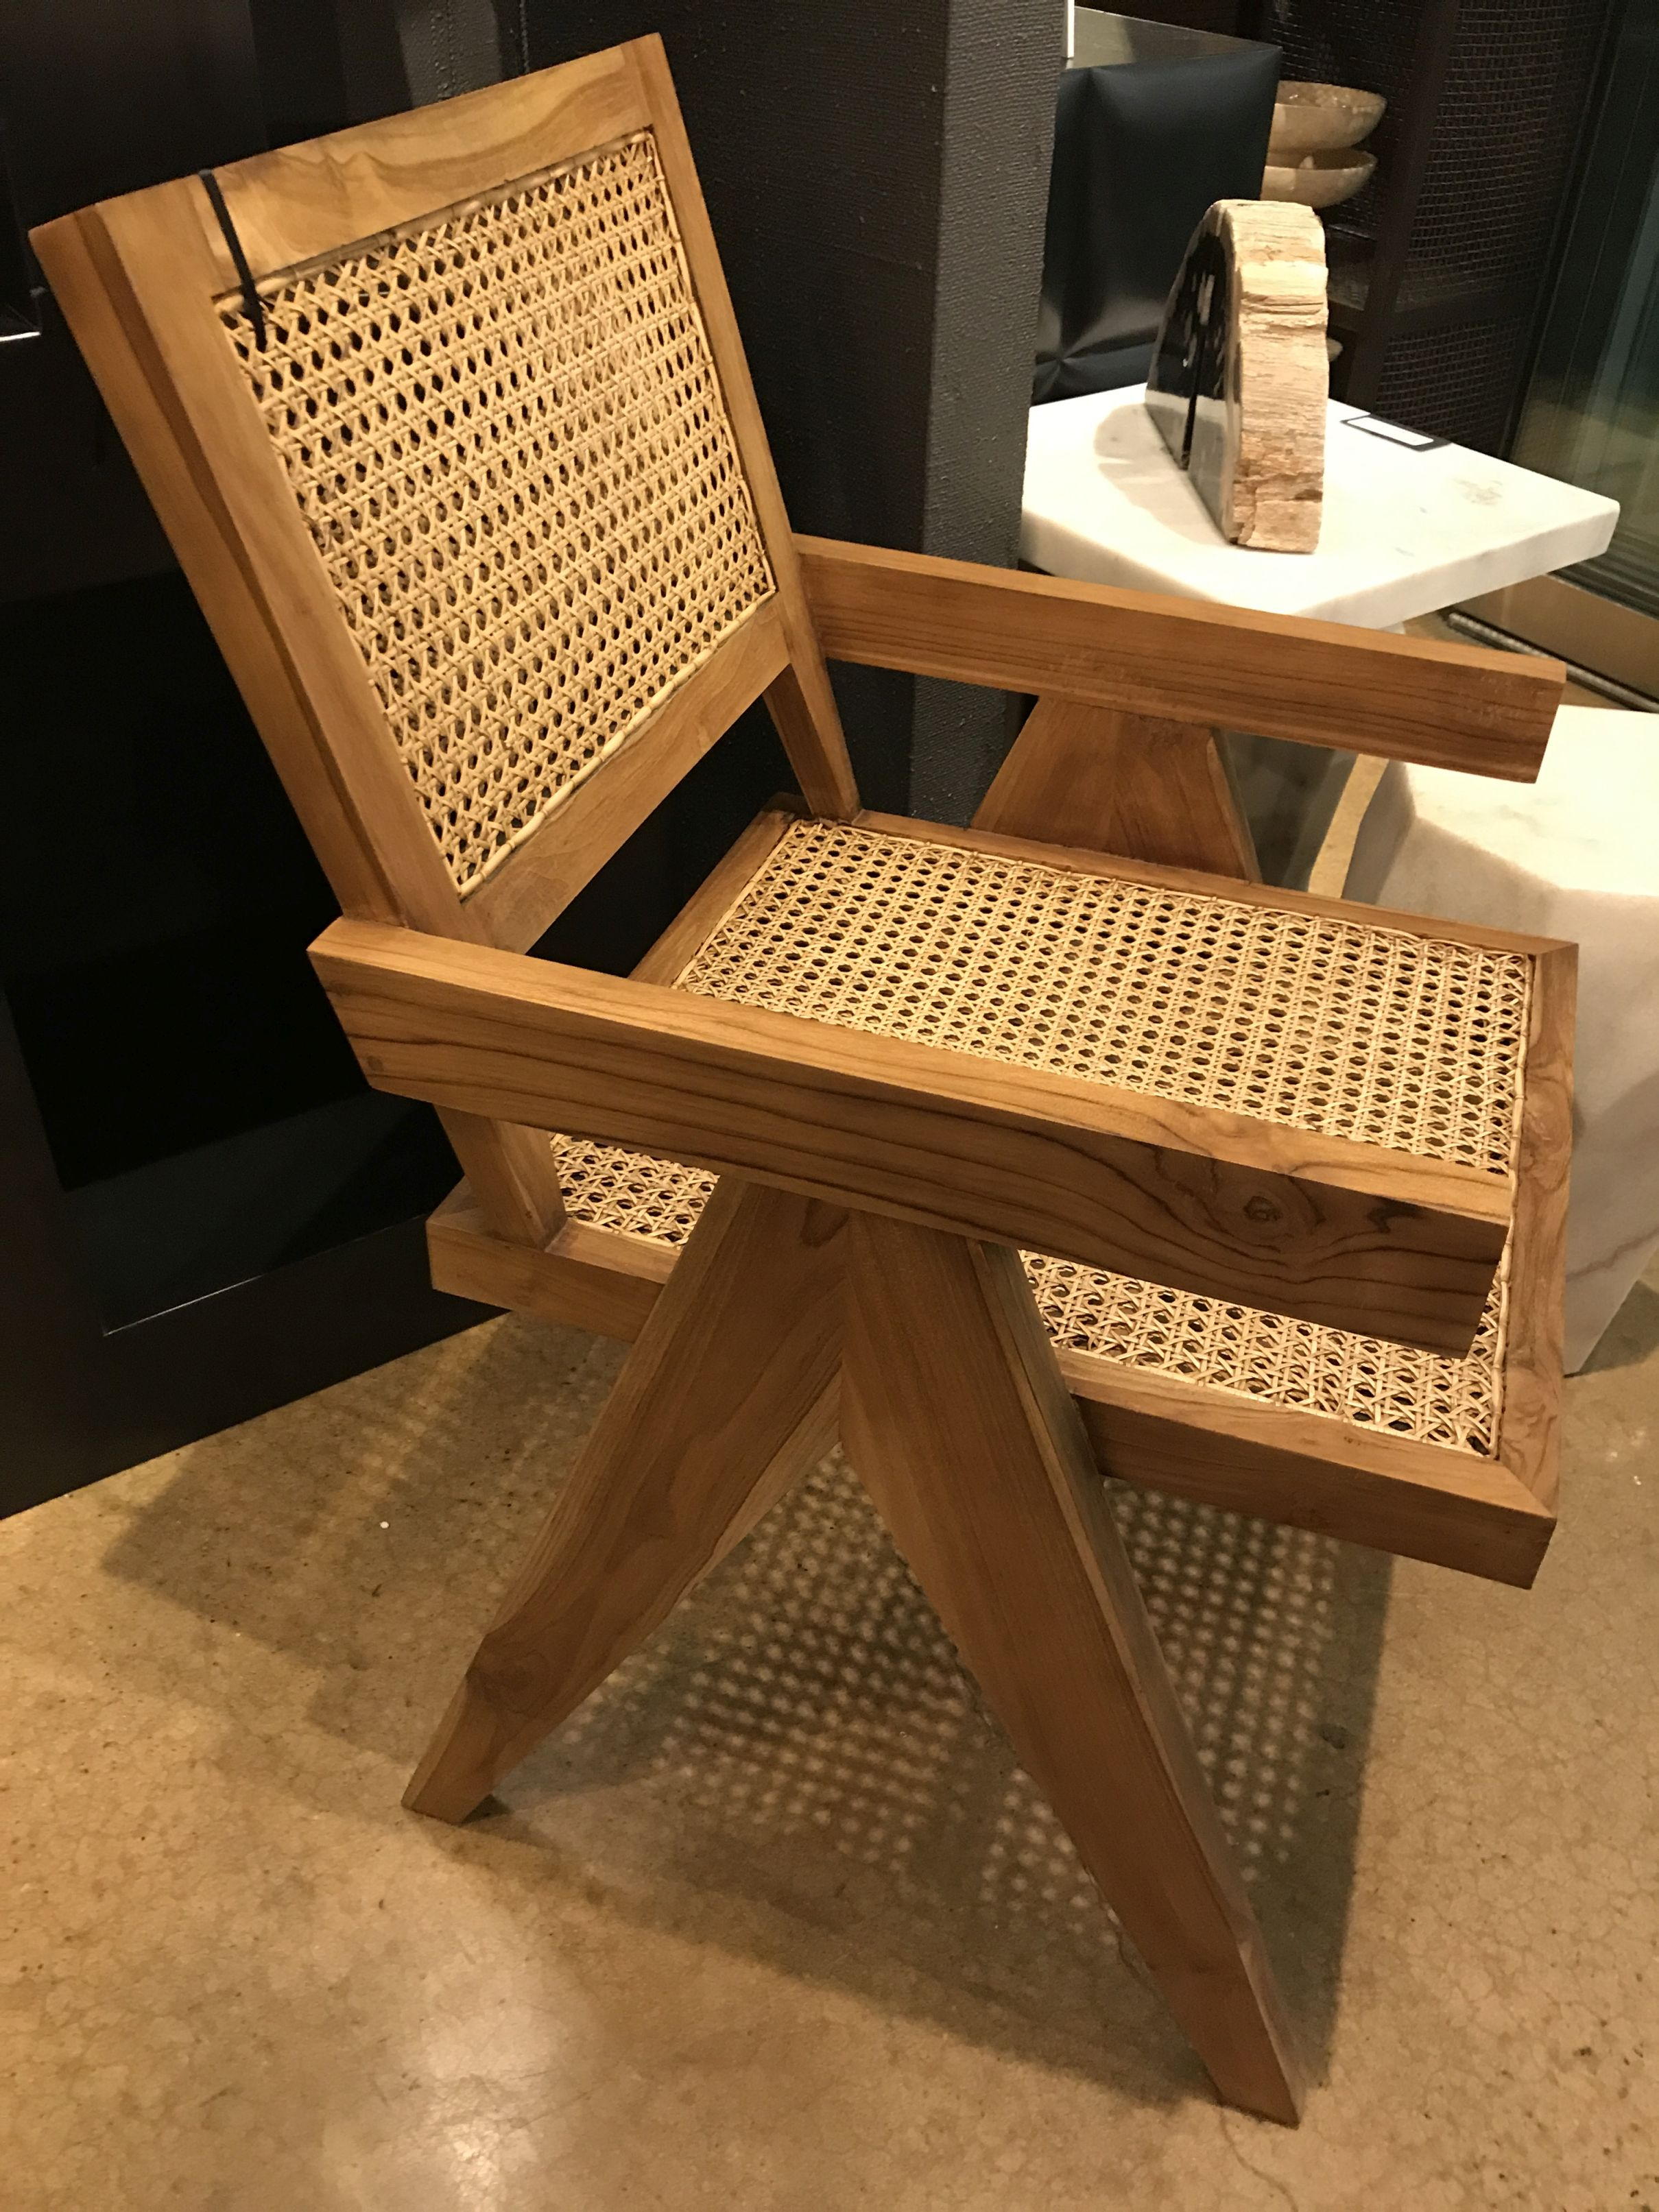 Excellent Jake Teak And Cane Arm Chair Mecox Gardens Andrewgaddart Wooden Chair Designs For Living Room Andrewgaddartcom